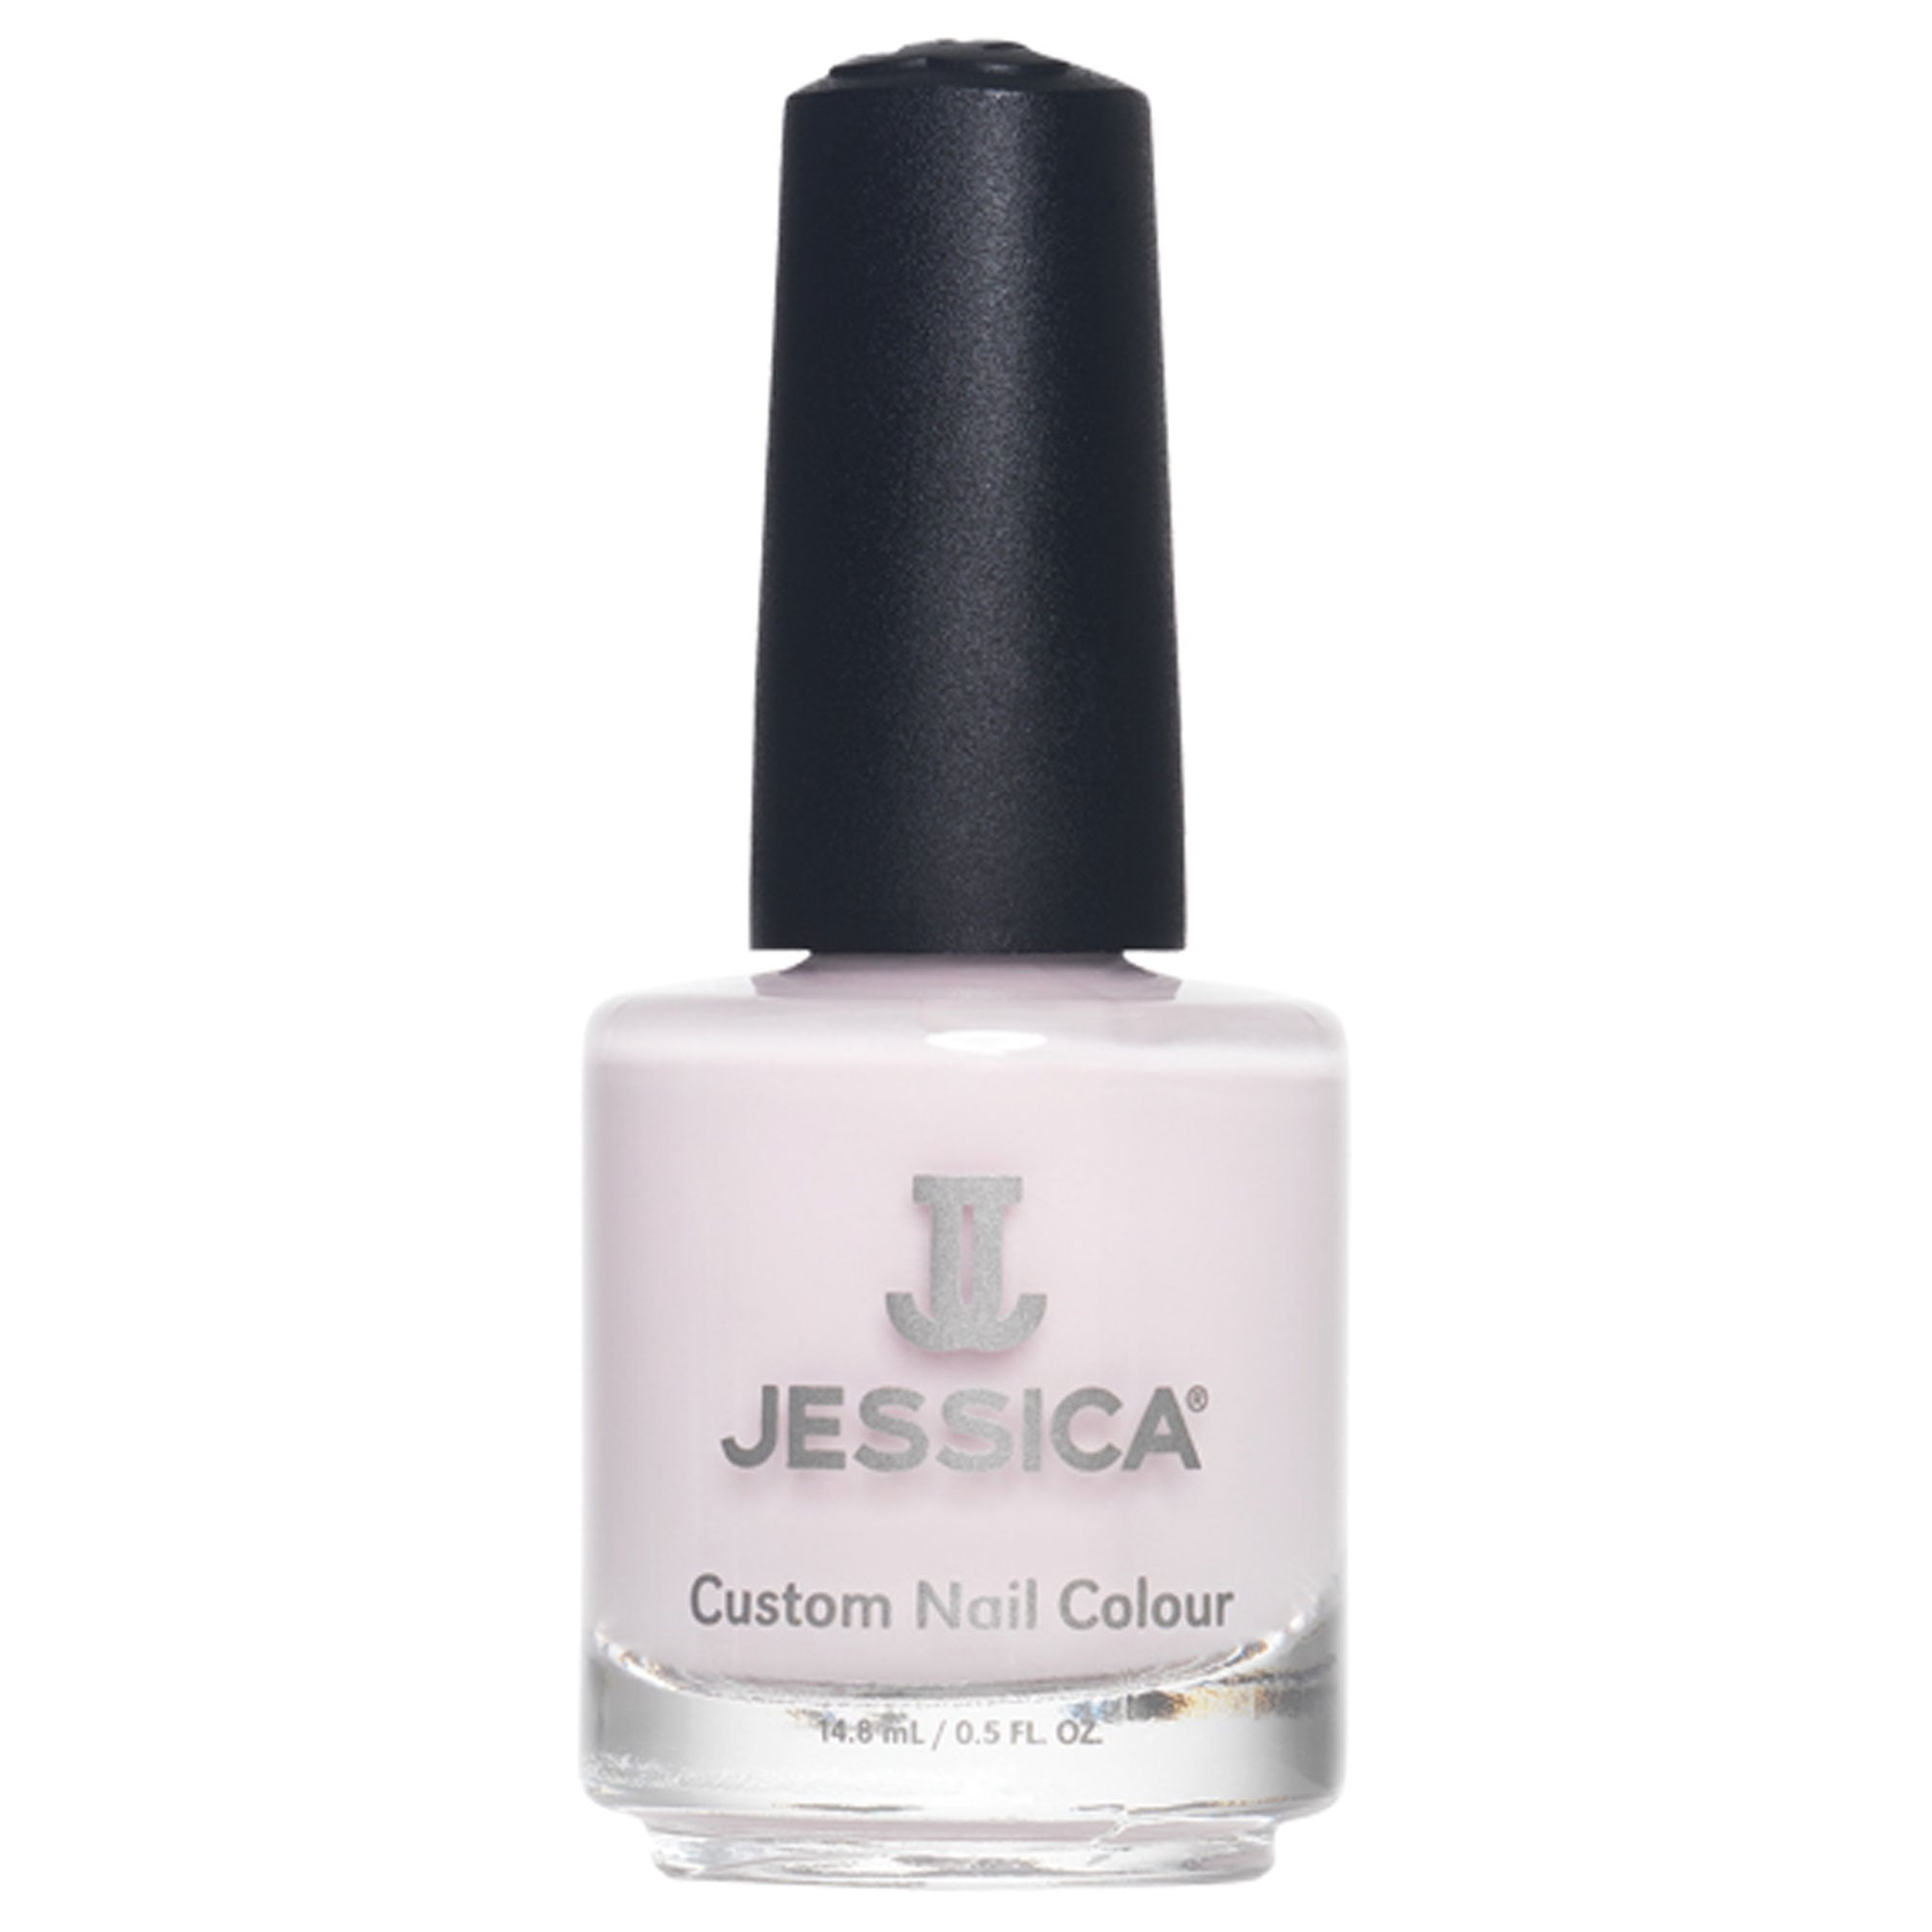 jessica whisper collection whisper is available at nail